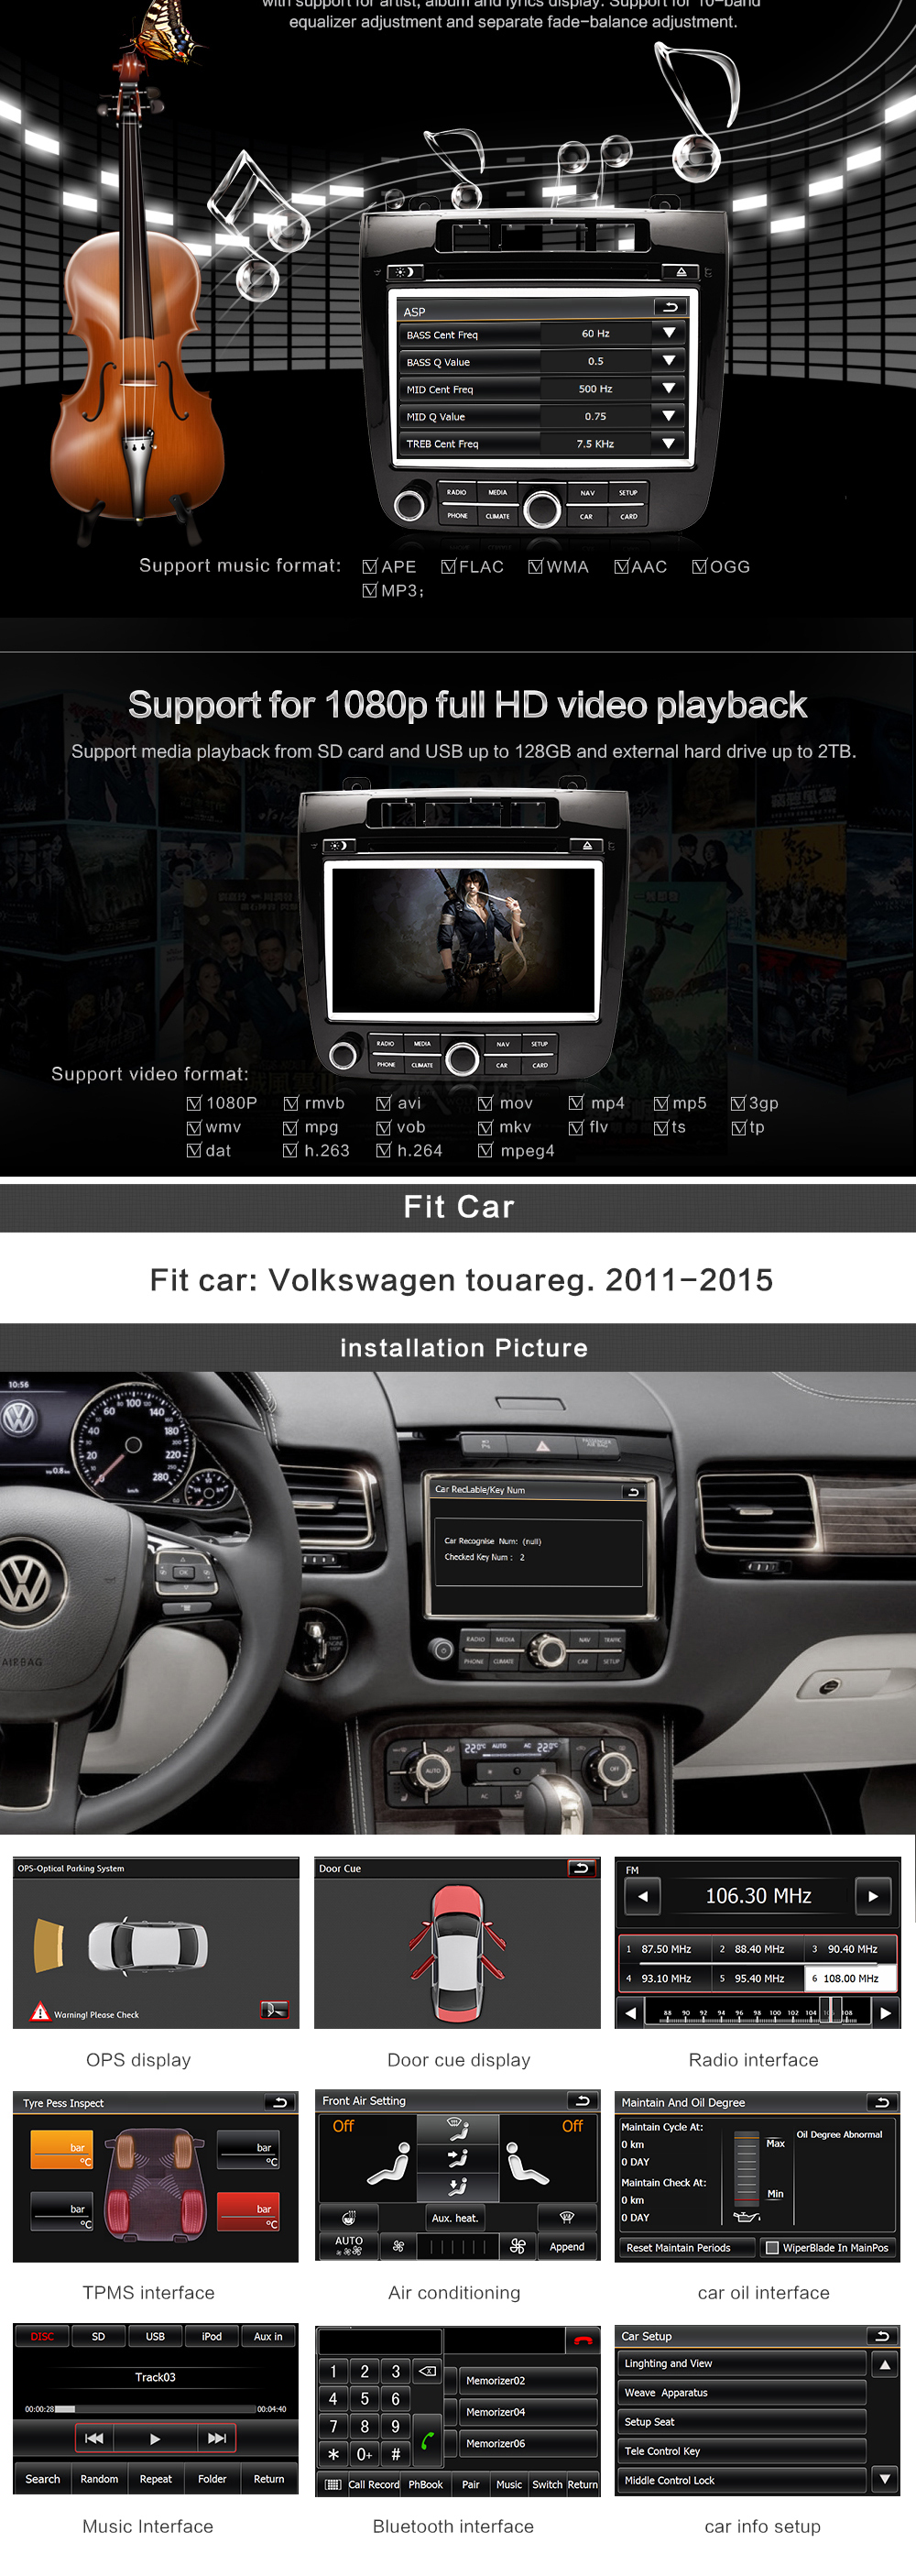 car dvd player for vw volkswagen touareg 2011-2013 car gps navigation system with OBD OPS IPAS SWC HD 1080P